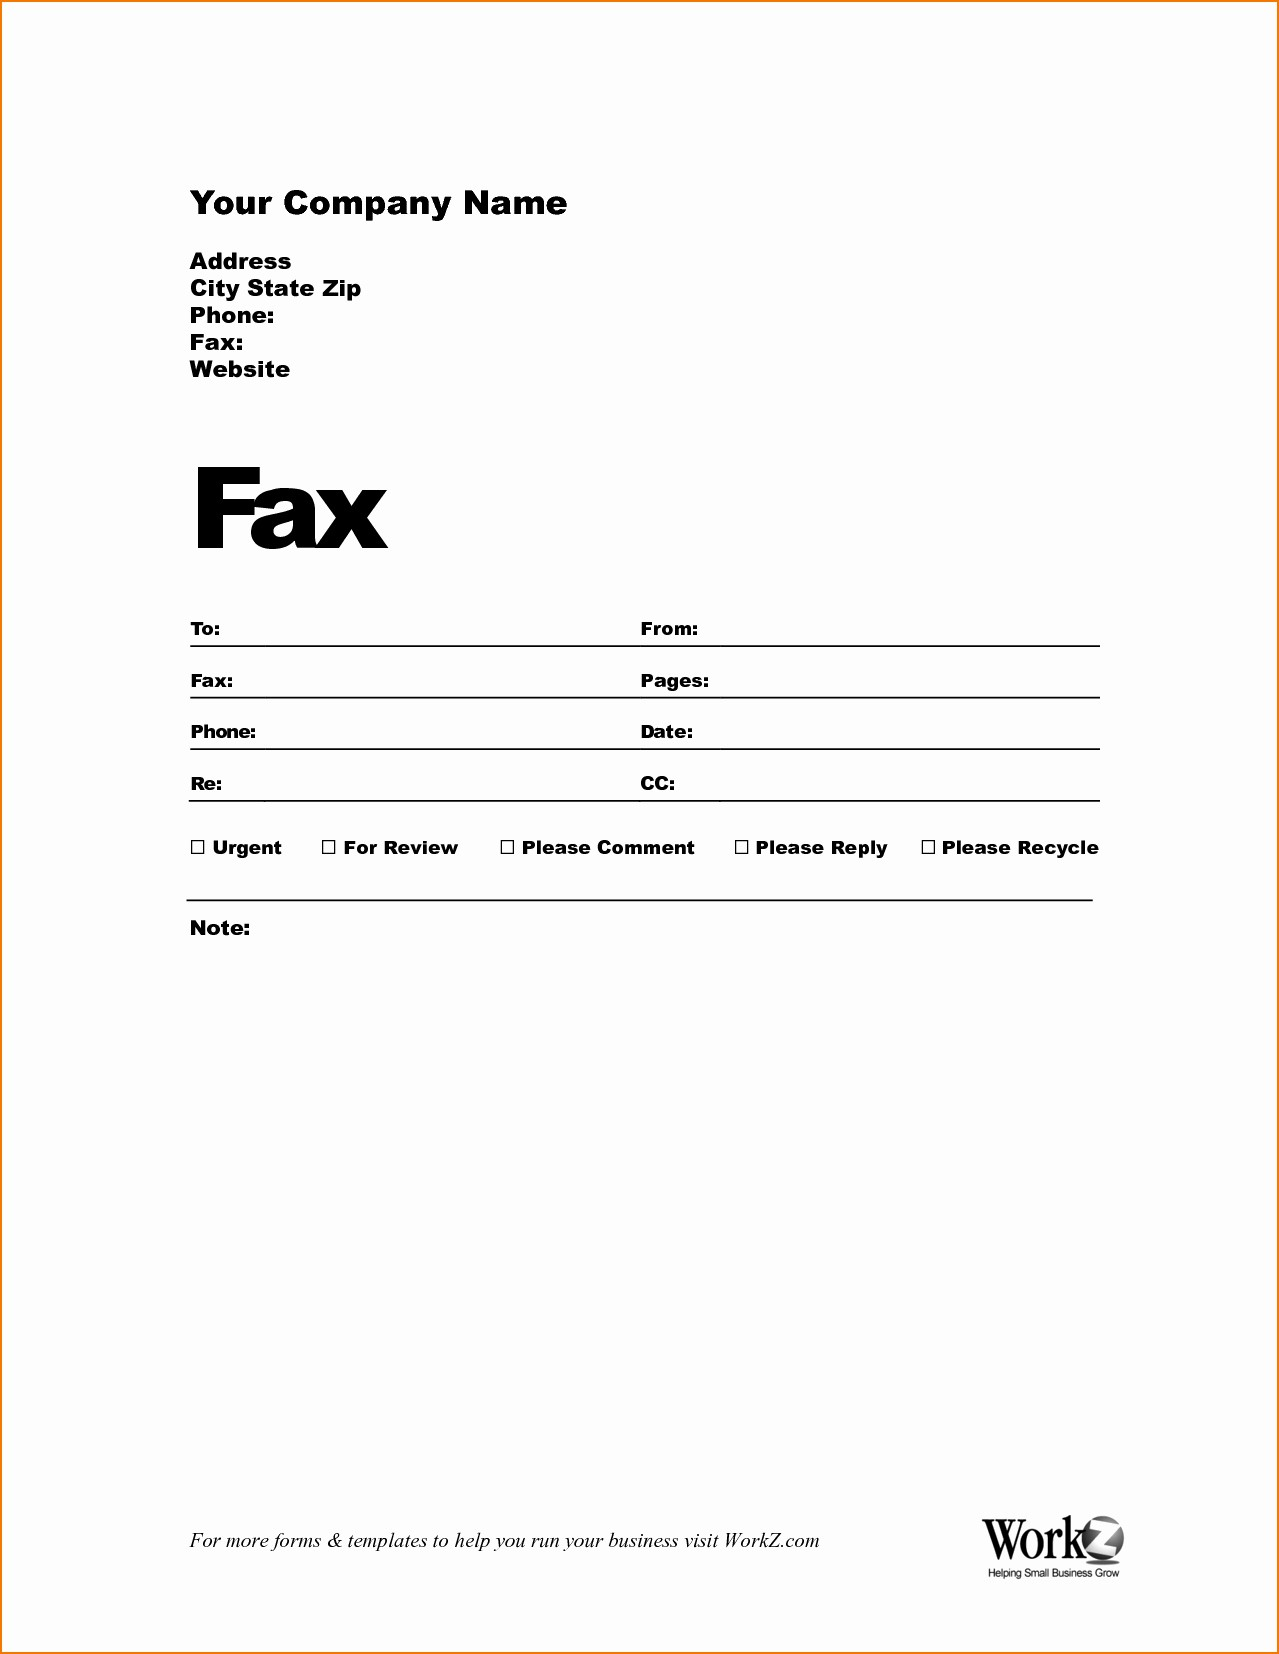 Fax Front Cover Sheet Template Lovely Sample Fax Cover Sheet